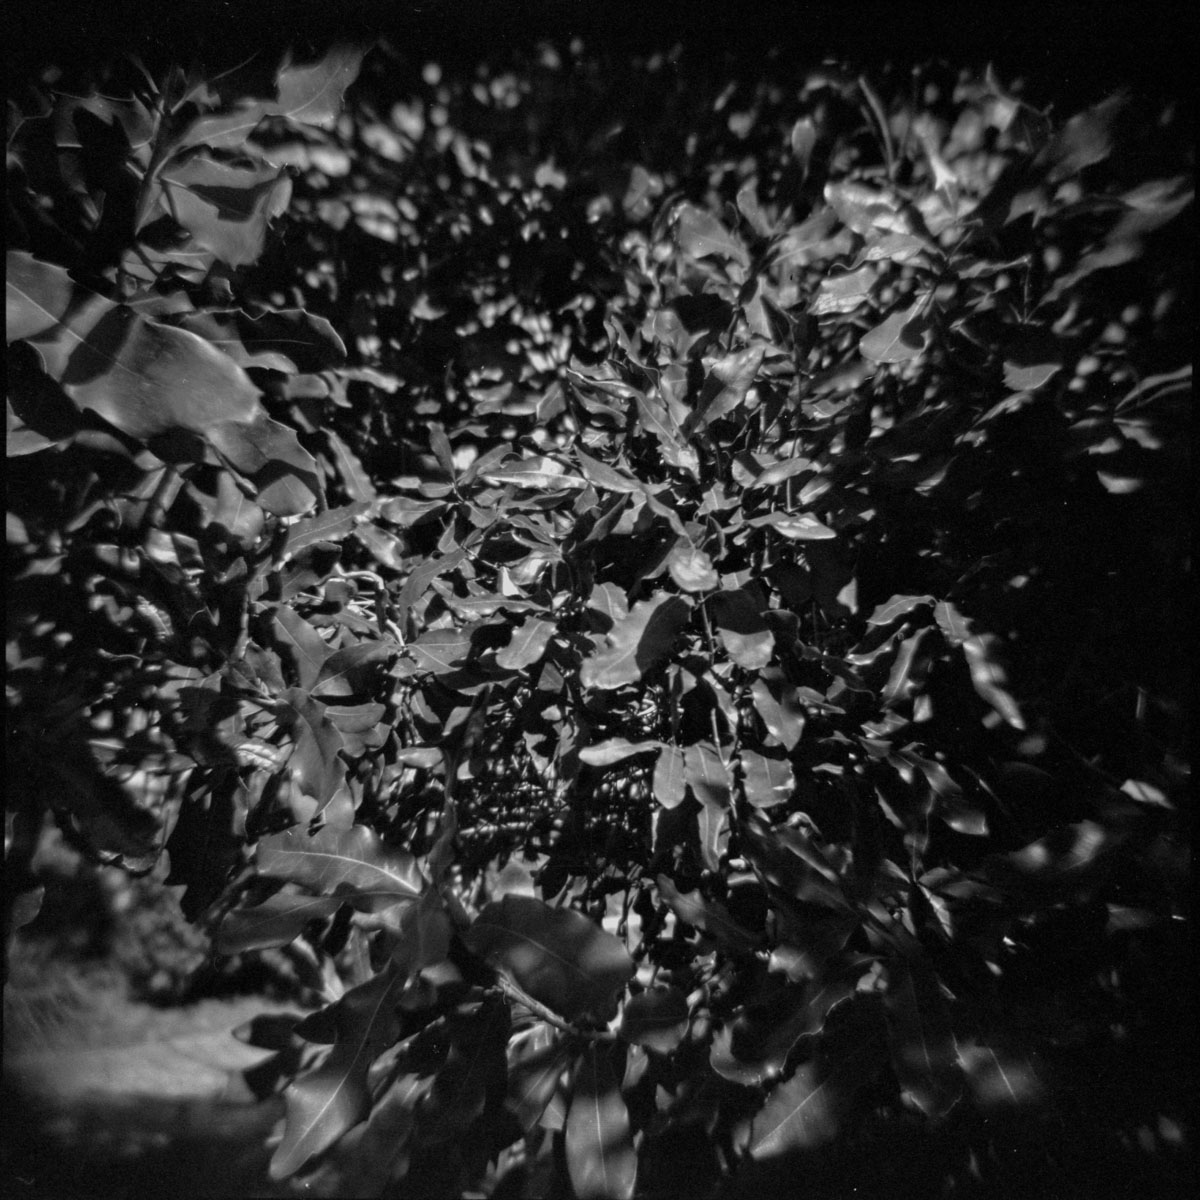 Fomapan 400 with Holga - plastic medium format camera - part ii